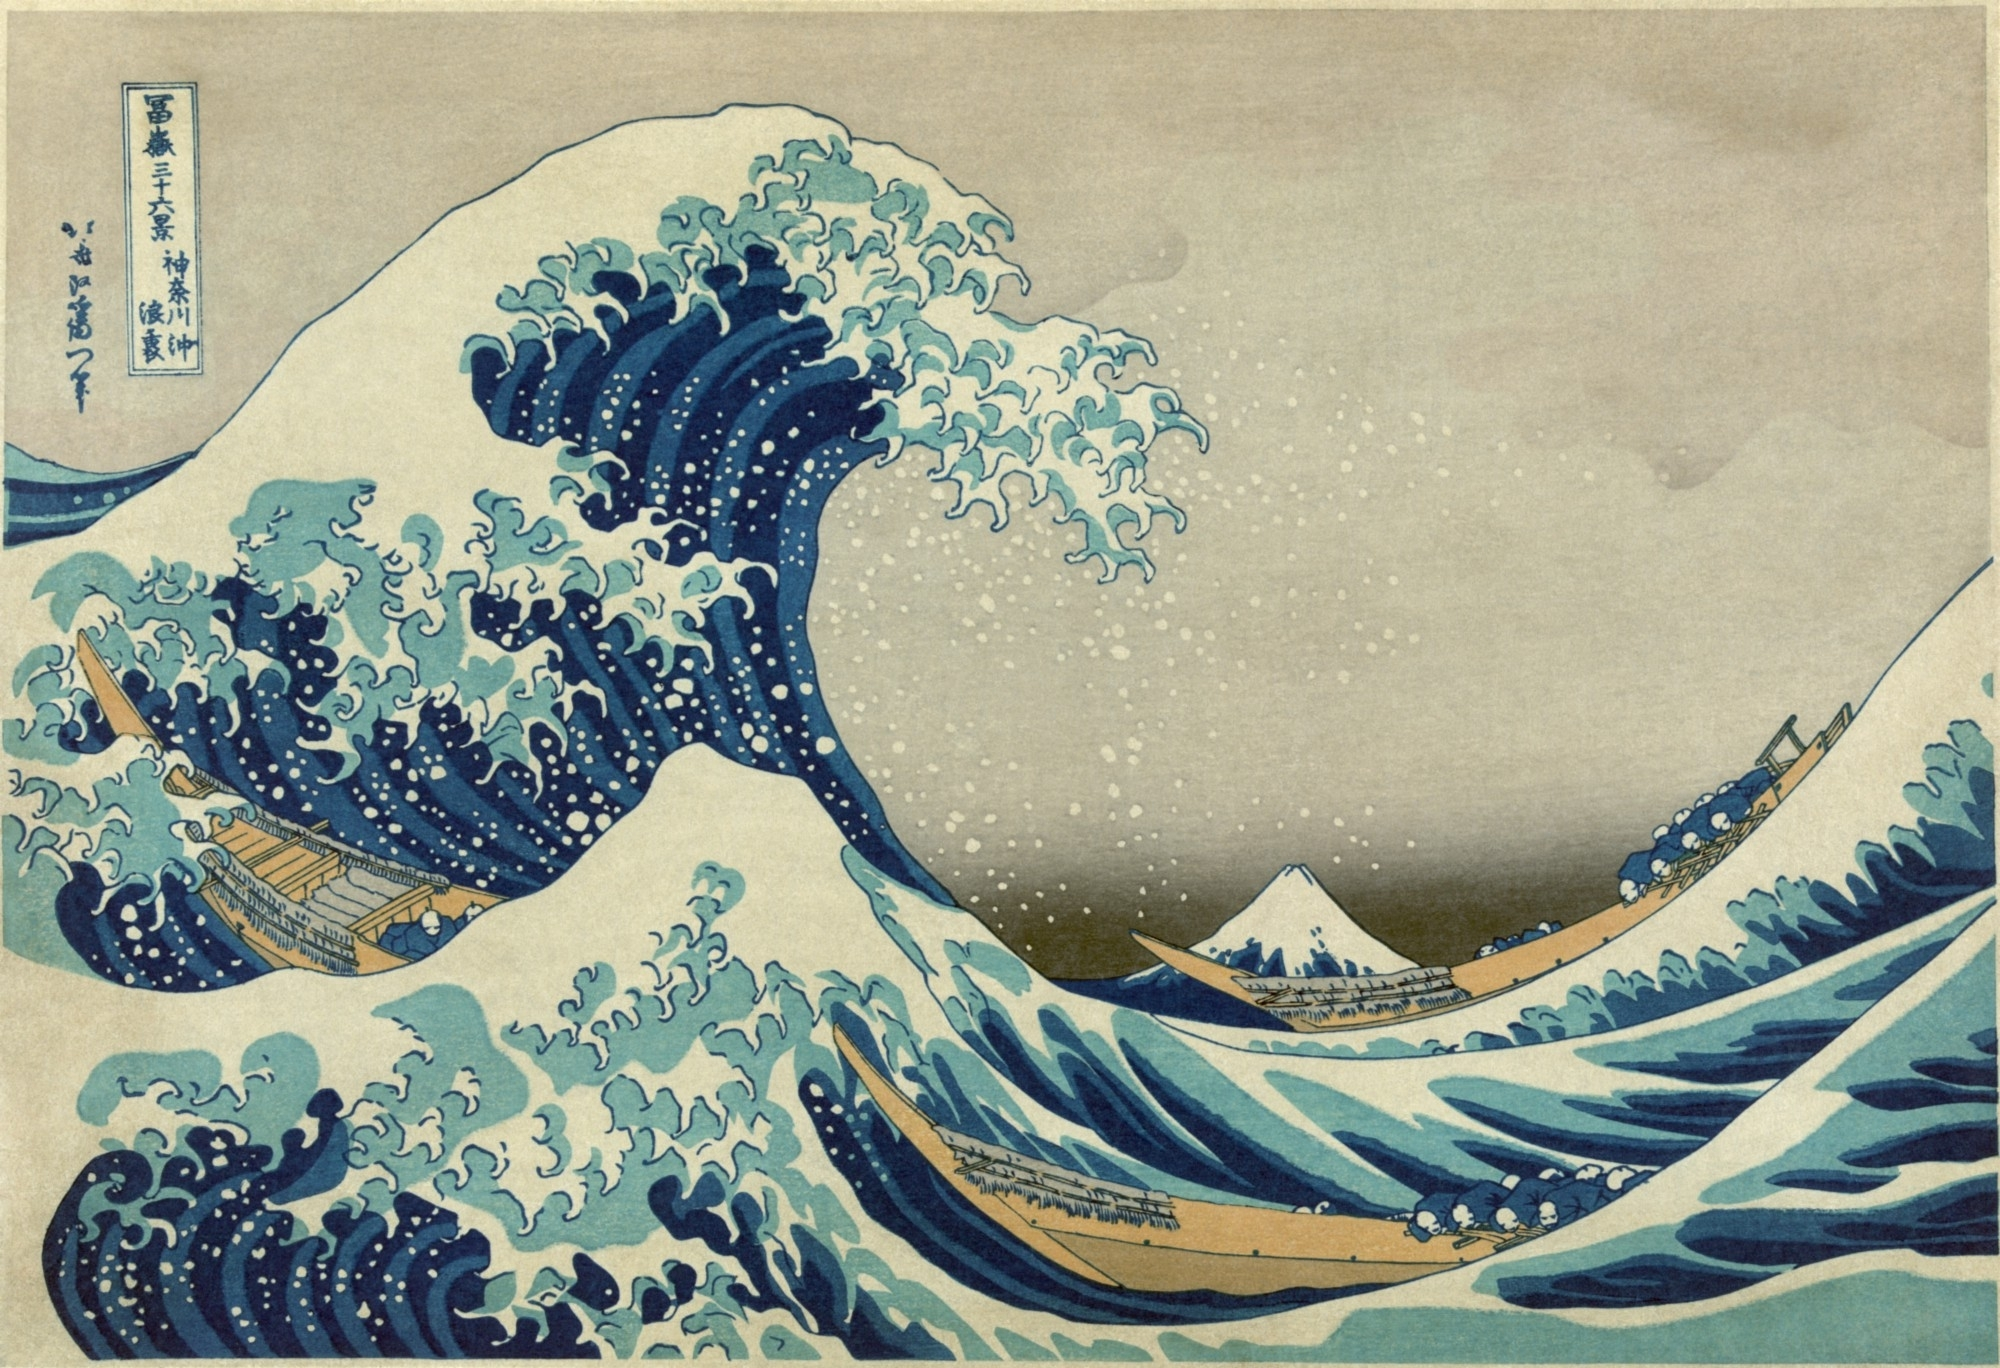 the great wave off kanagawa – manuel lima – medium